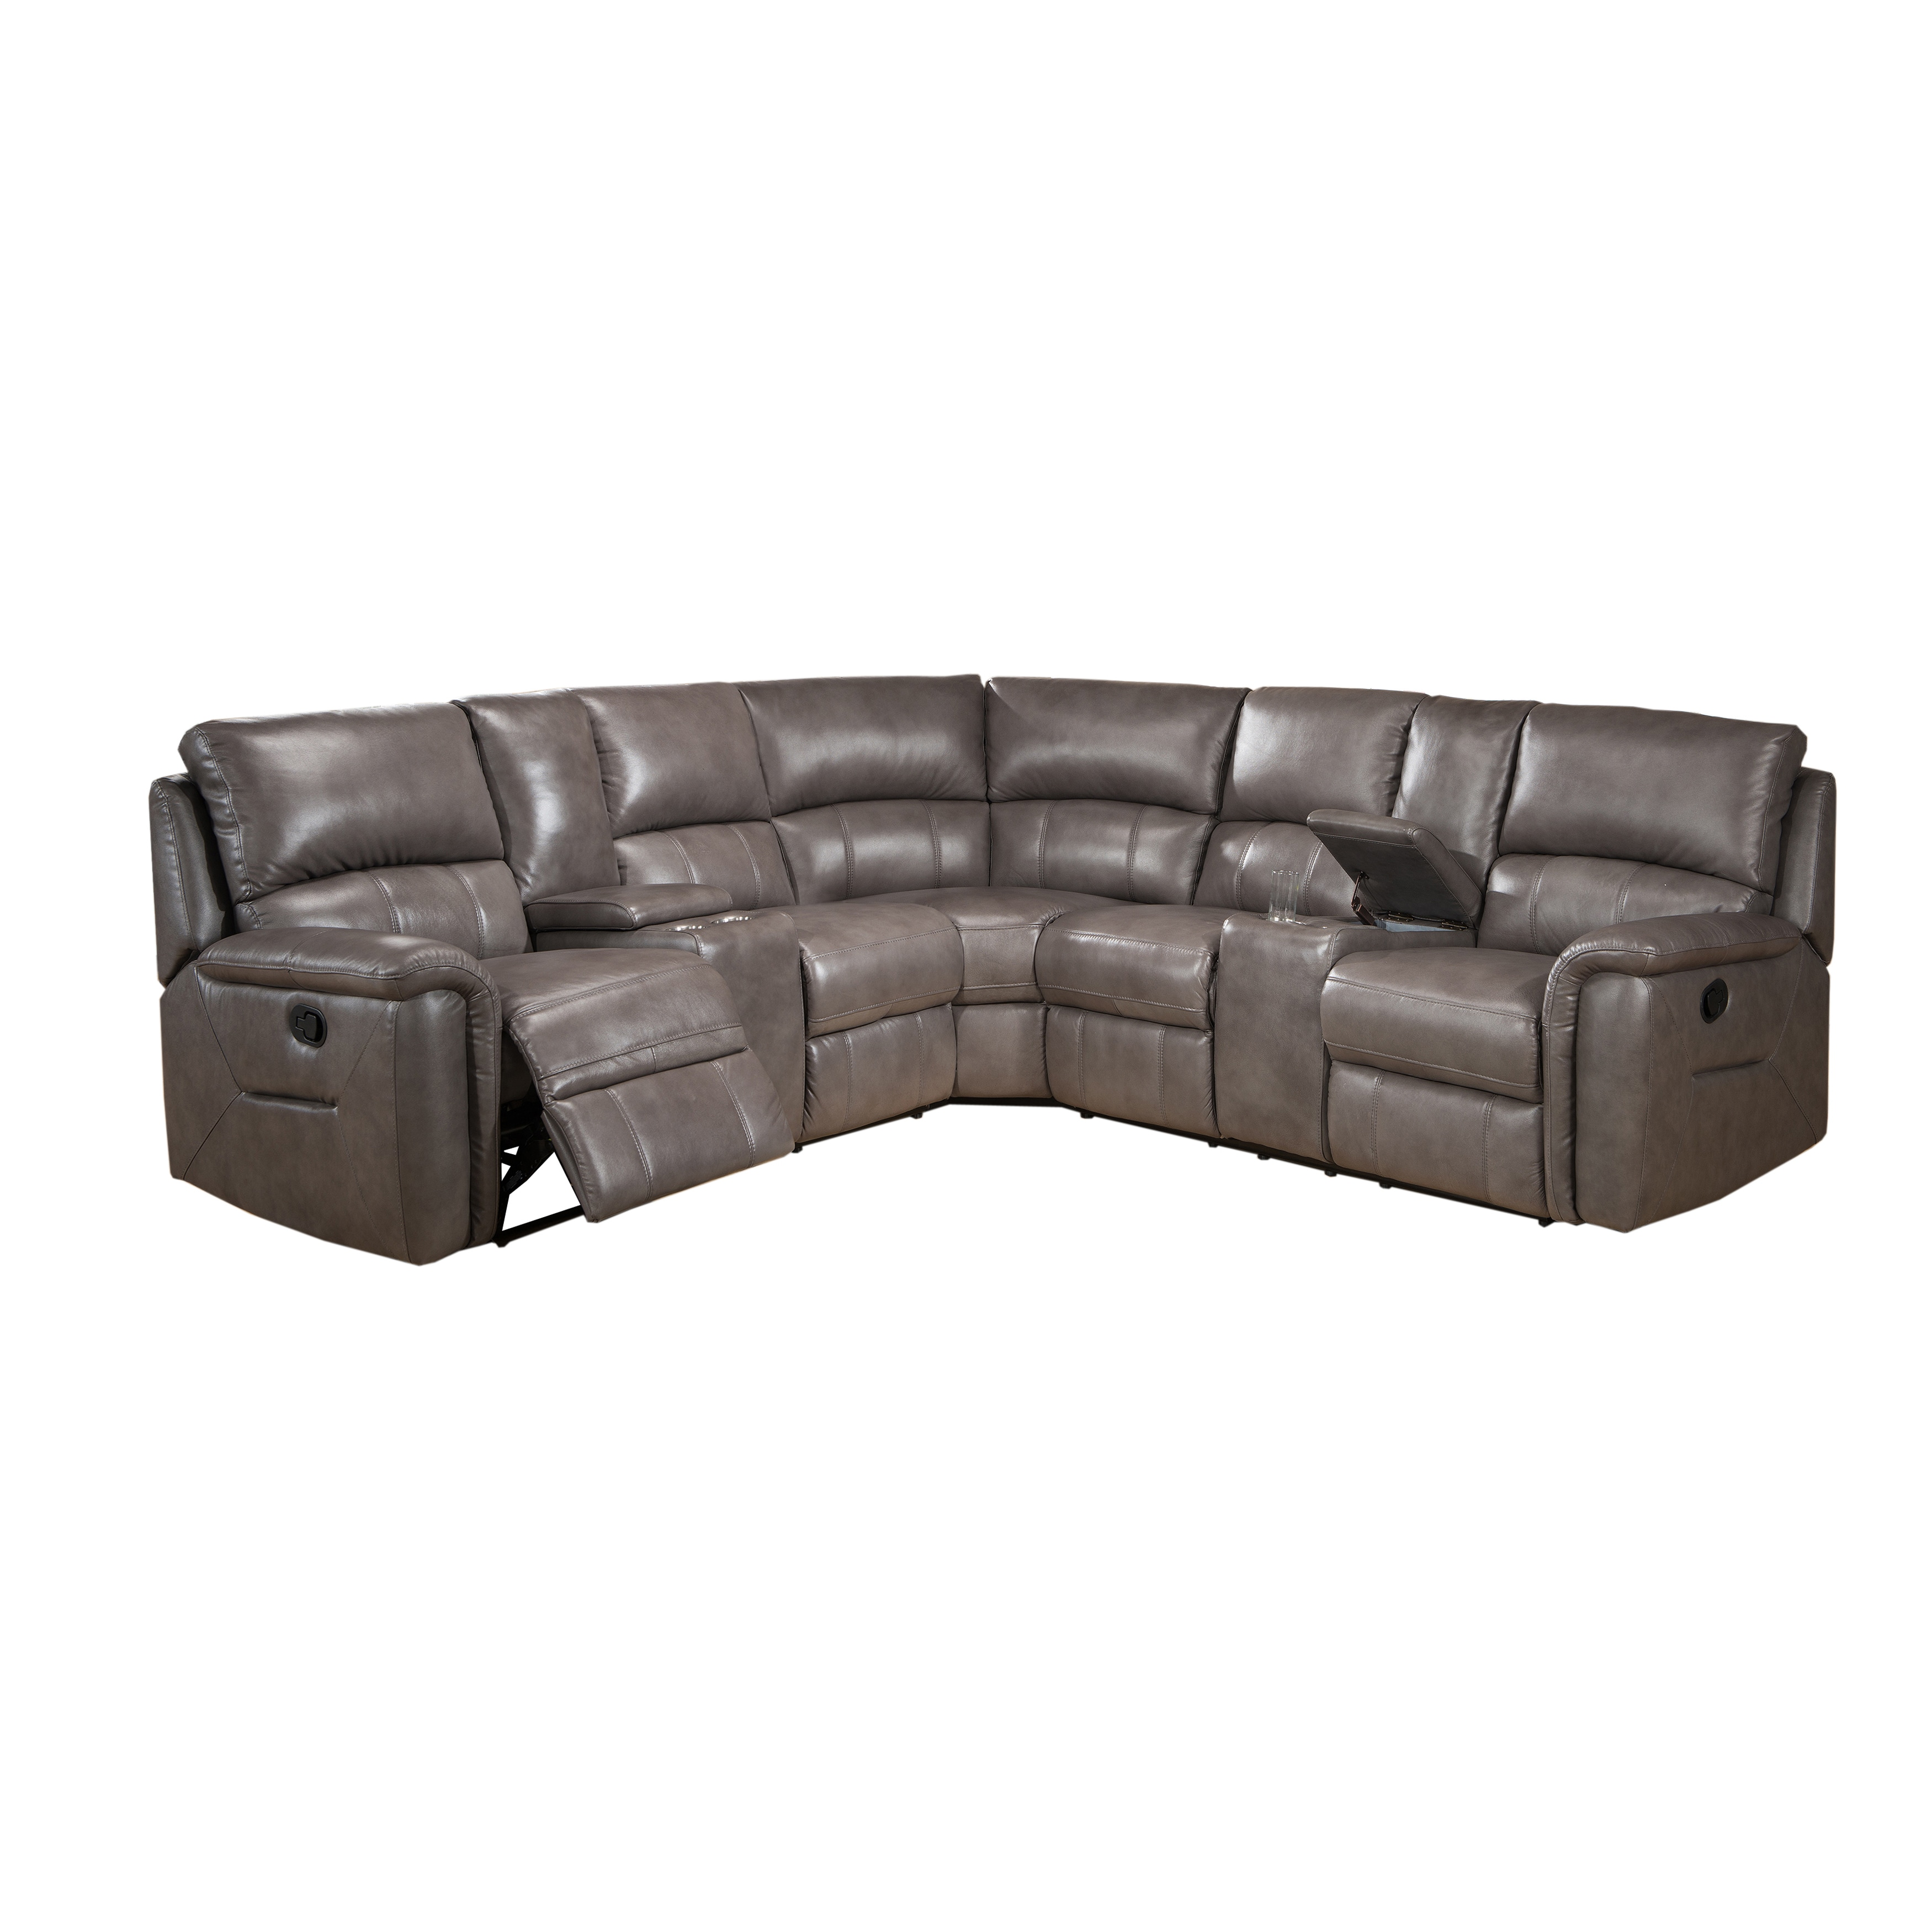 Cortez Premium Top Grain Gray Leather Reclining Sectional Sofa   Free  Shipping Today   Overstock.com   17416500